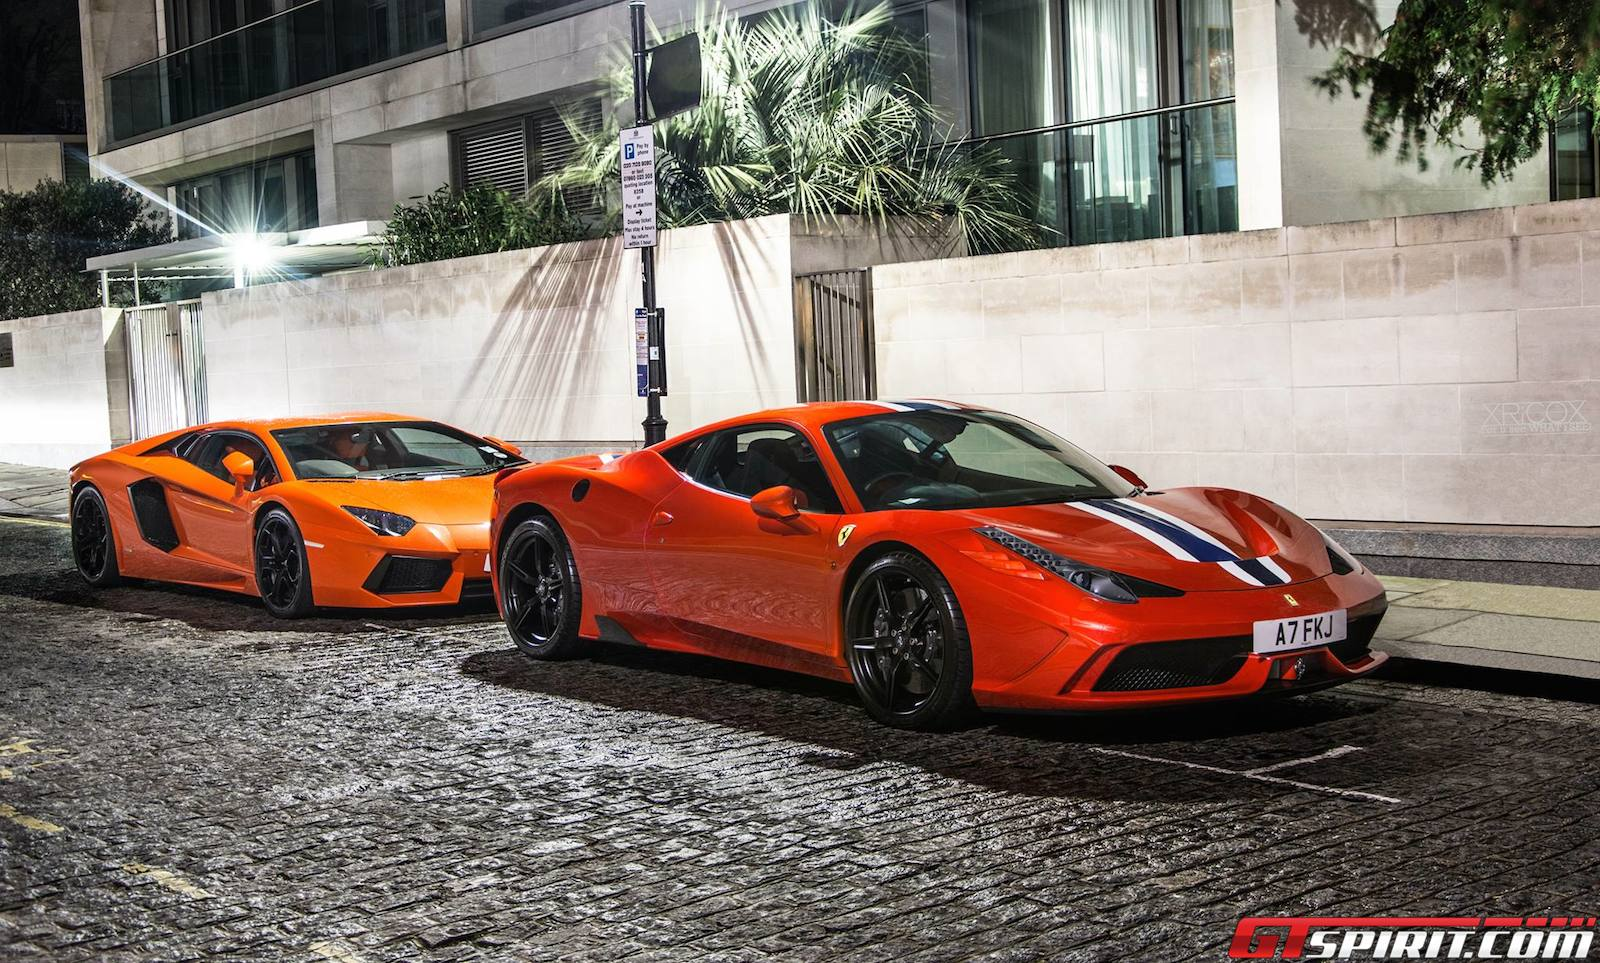 Photo Of The Day: Lamborghini Aventador & Ferrari 458 Speciale ...